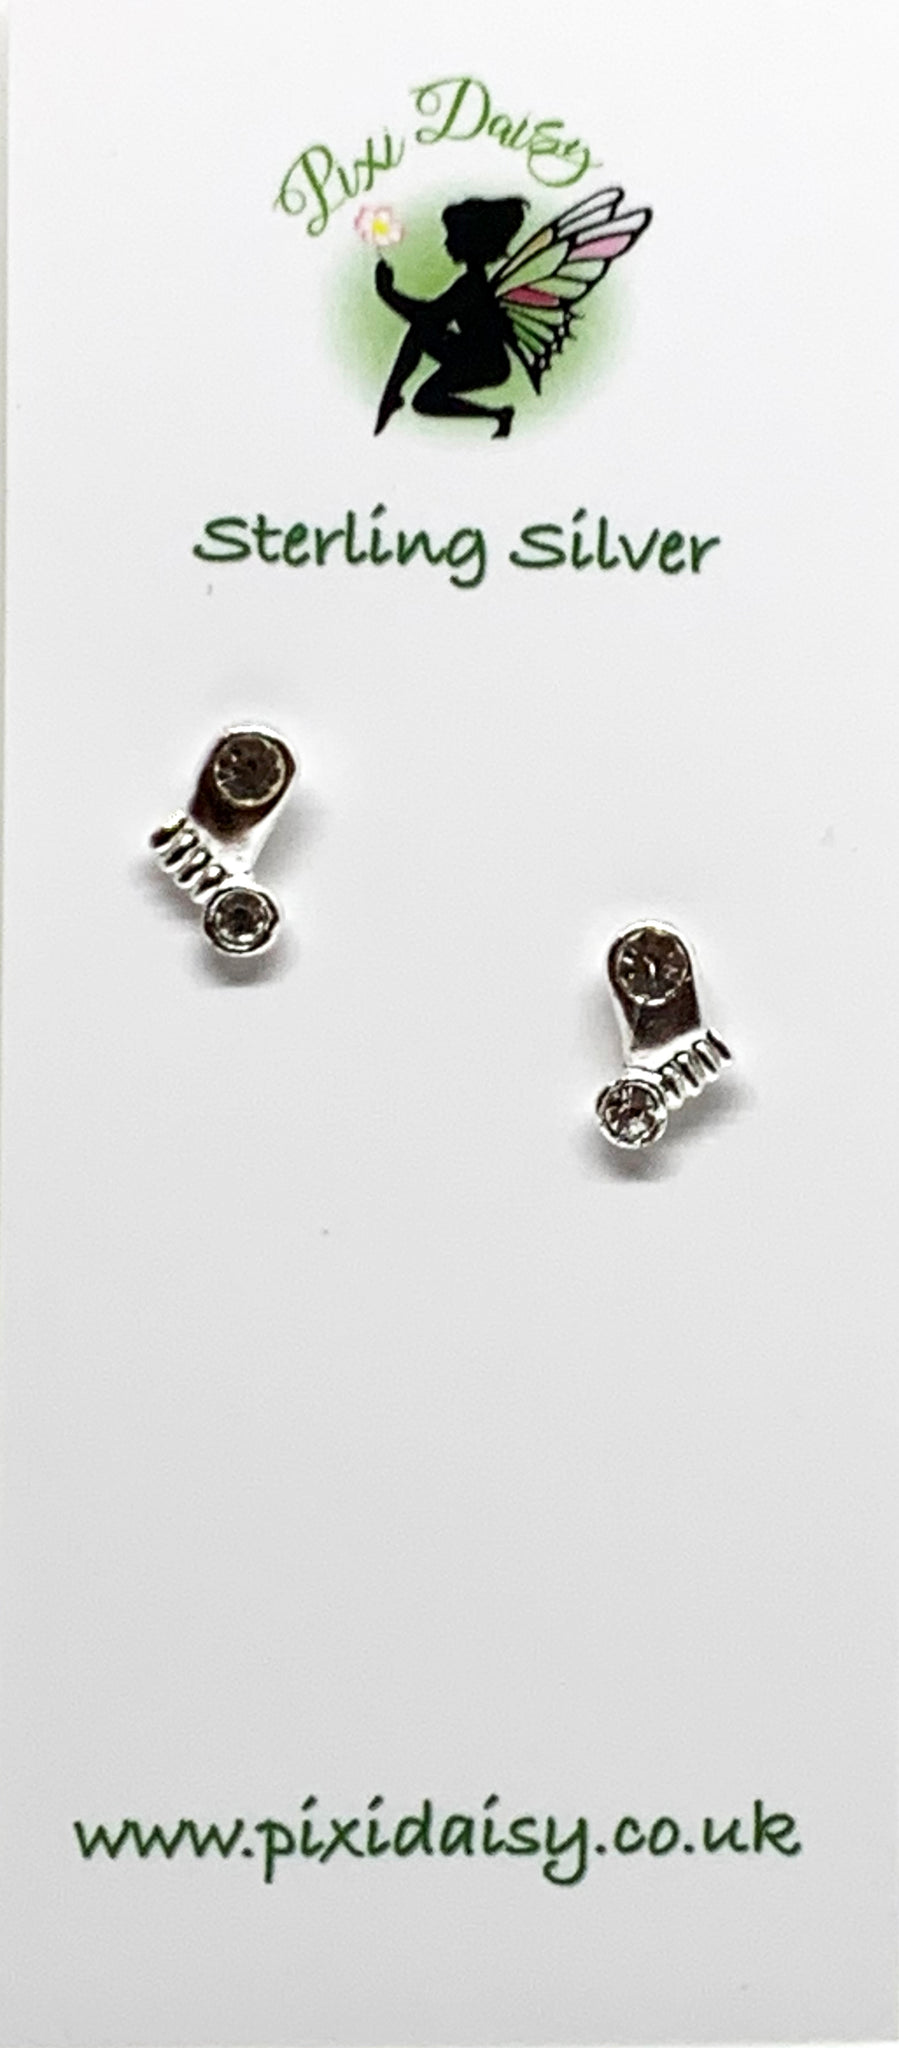 Silver Feet Ear Studs from Pixi Daisy